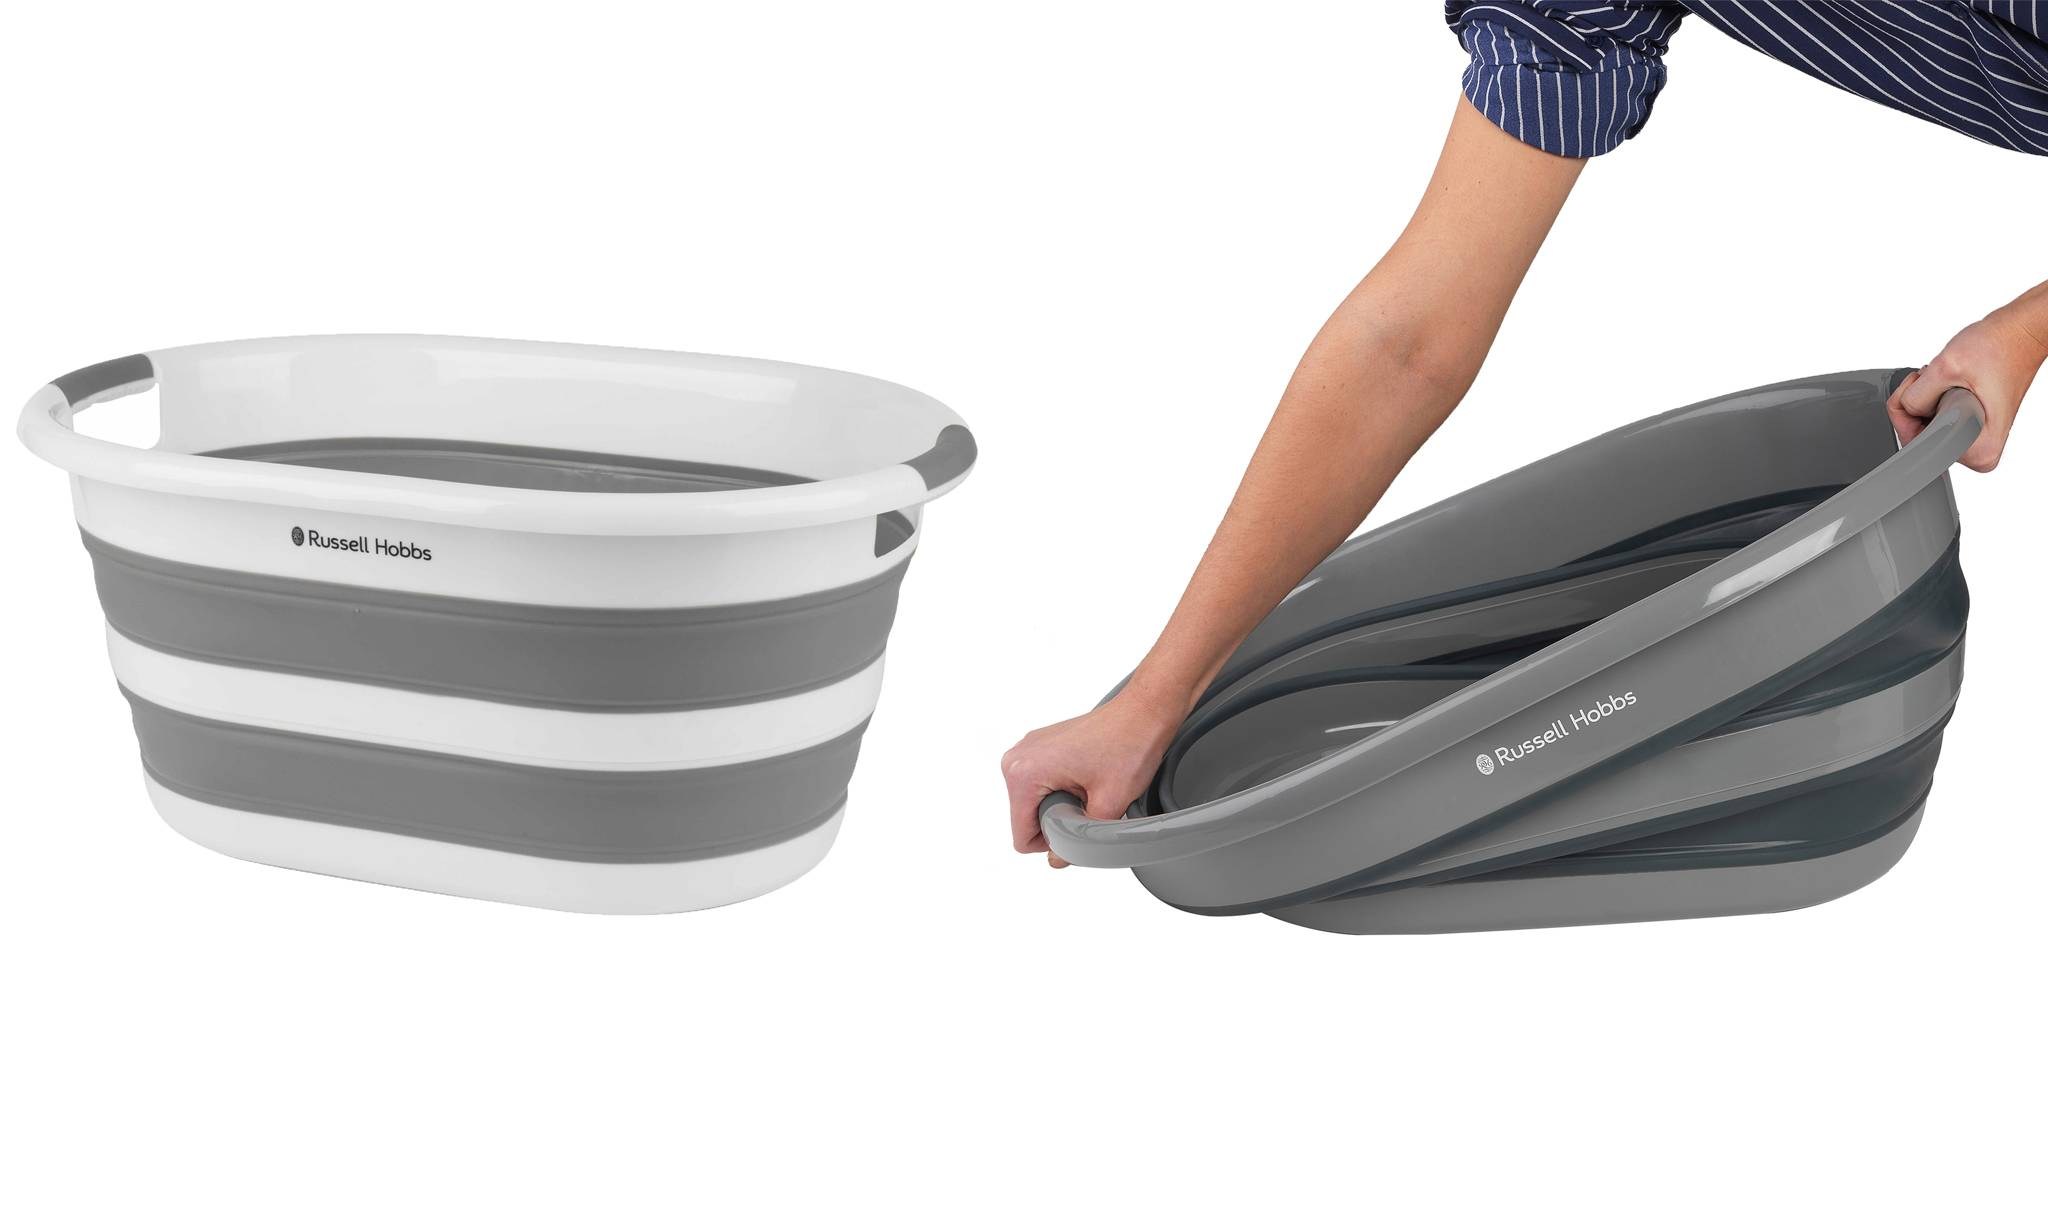 Russell Hobbs Oval Collapsible Laundry Basket: White